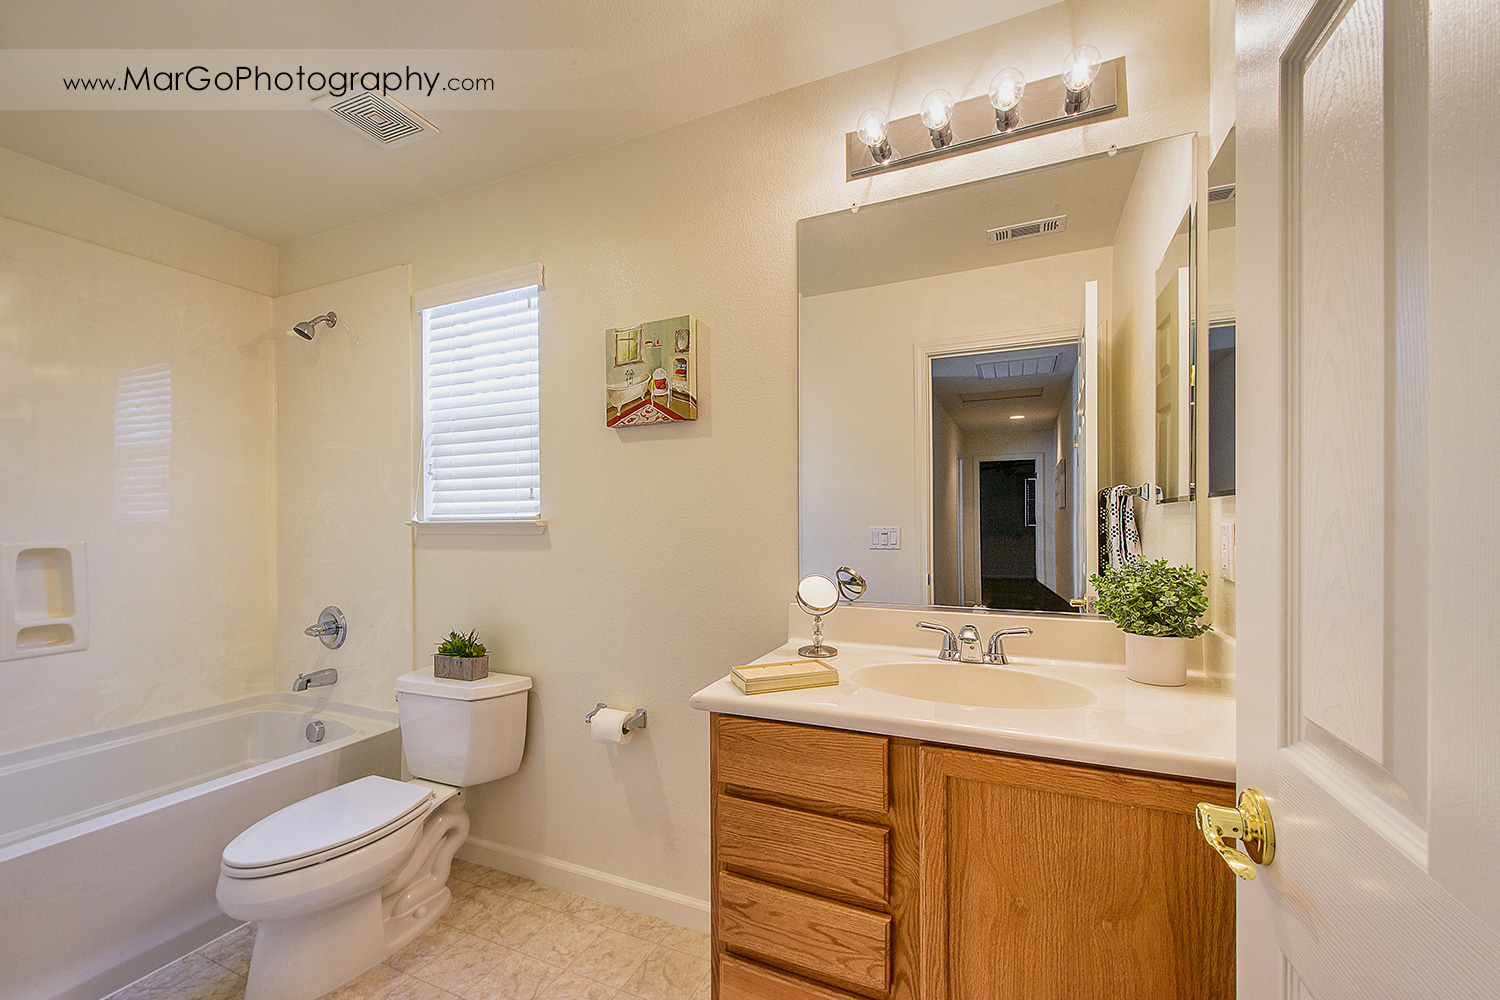 Pittsburd house upstairs bathroom - real estate photography